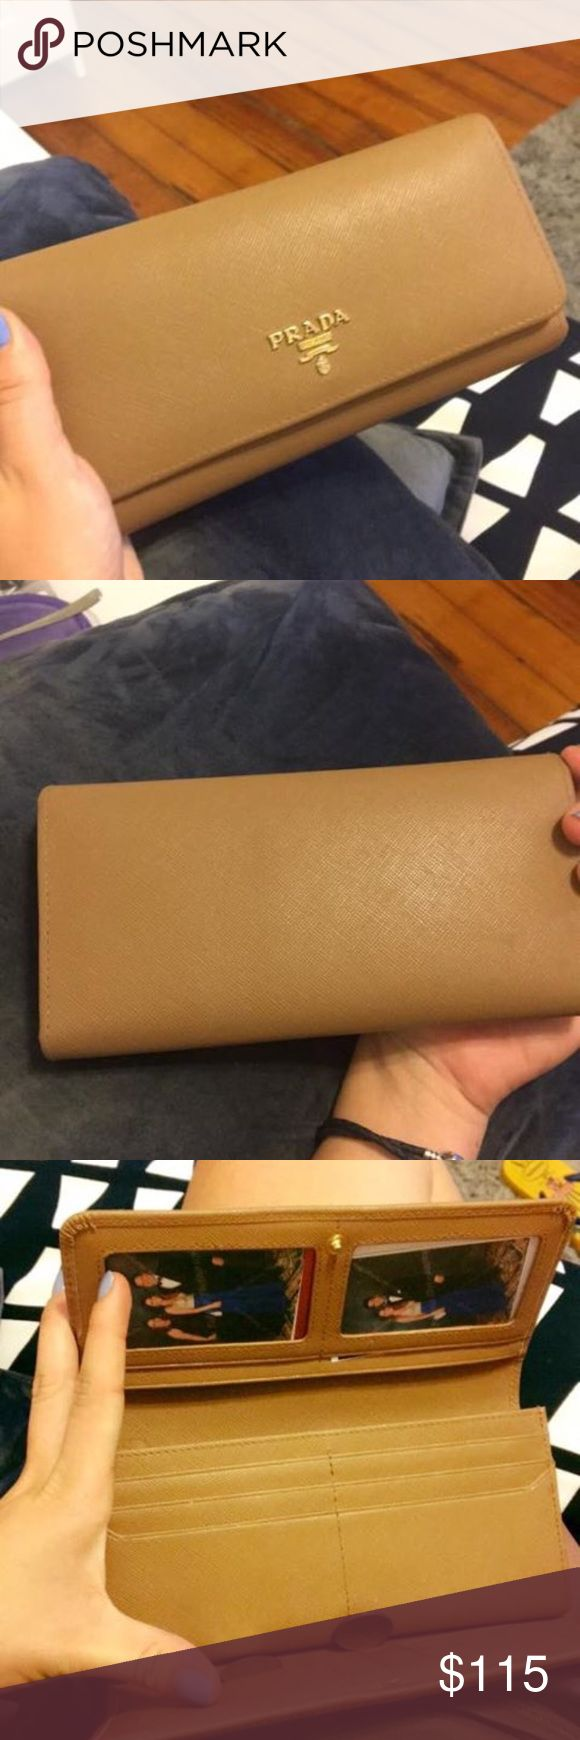 Prada Wallet Used condition. No tags or box. No scratches or stains. Asking for $115 or best offer Prada Bags Wallets